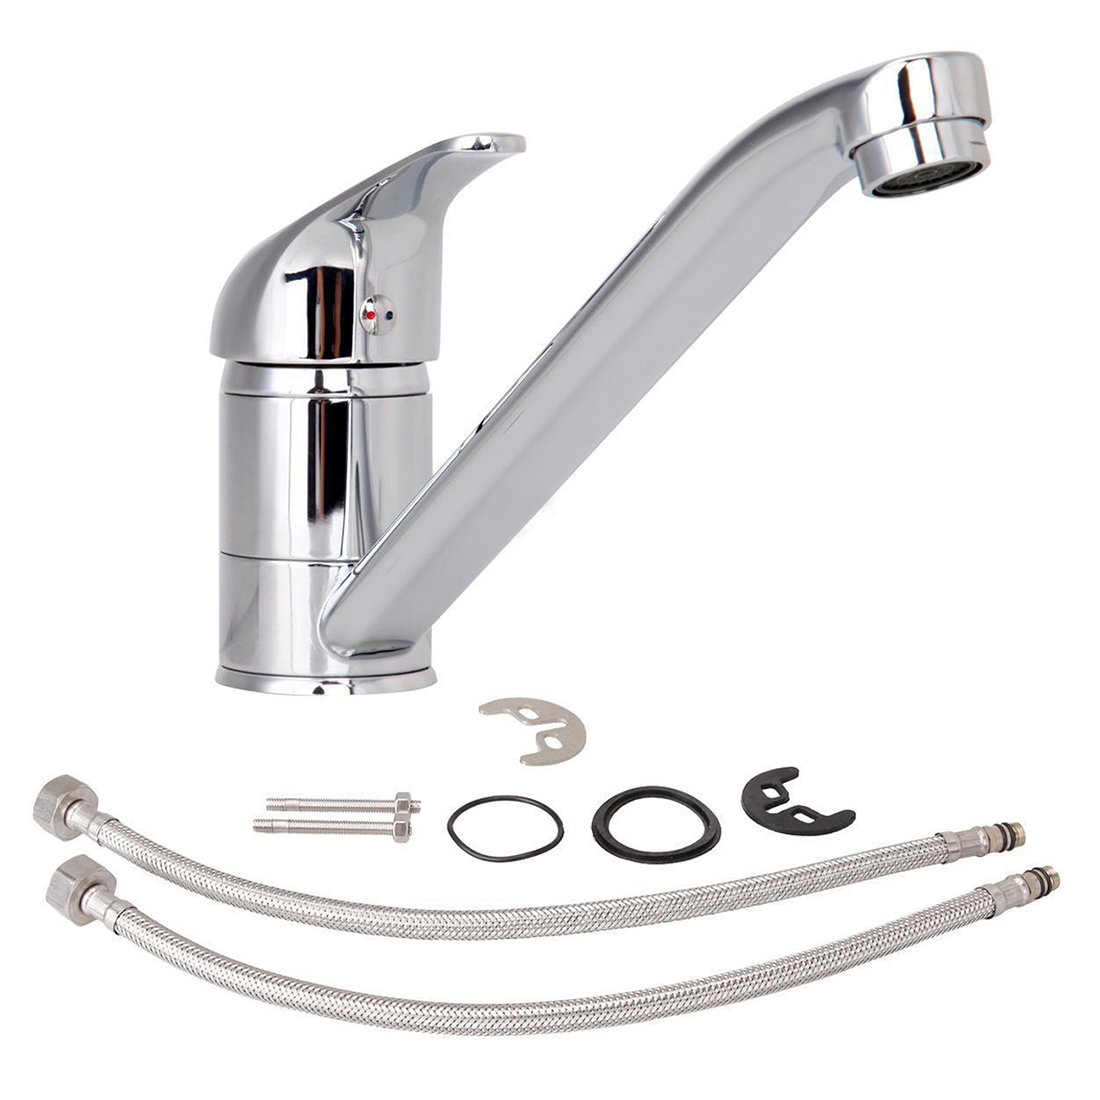 Waterfall Faucet Wash Basin Faucet Wash Basin Mixer Faucet Water Diffuser Chrome Plated Kitchen Mixer Tap ith 40cm Braided HosesWaterfall Faucet Wash Basin Faucet Wash Basin Mixer Faucet Water Diffuser Chrome Plated Kitchen Mixer Tap ith 40cm Braided Hoses